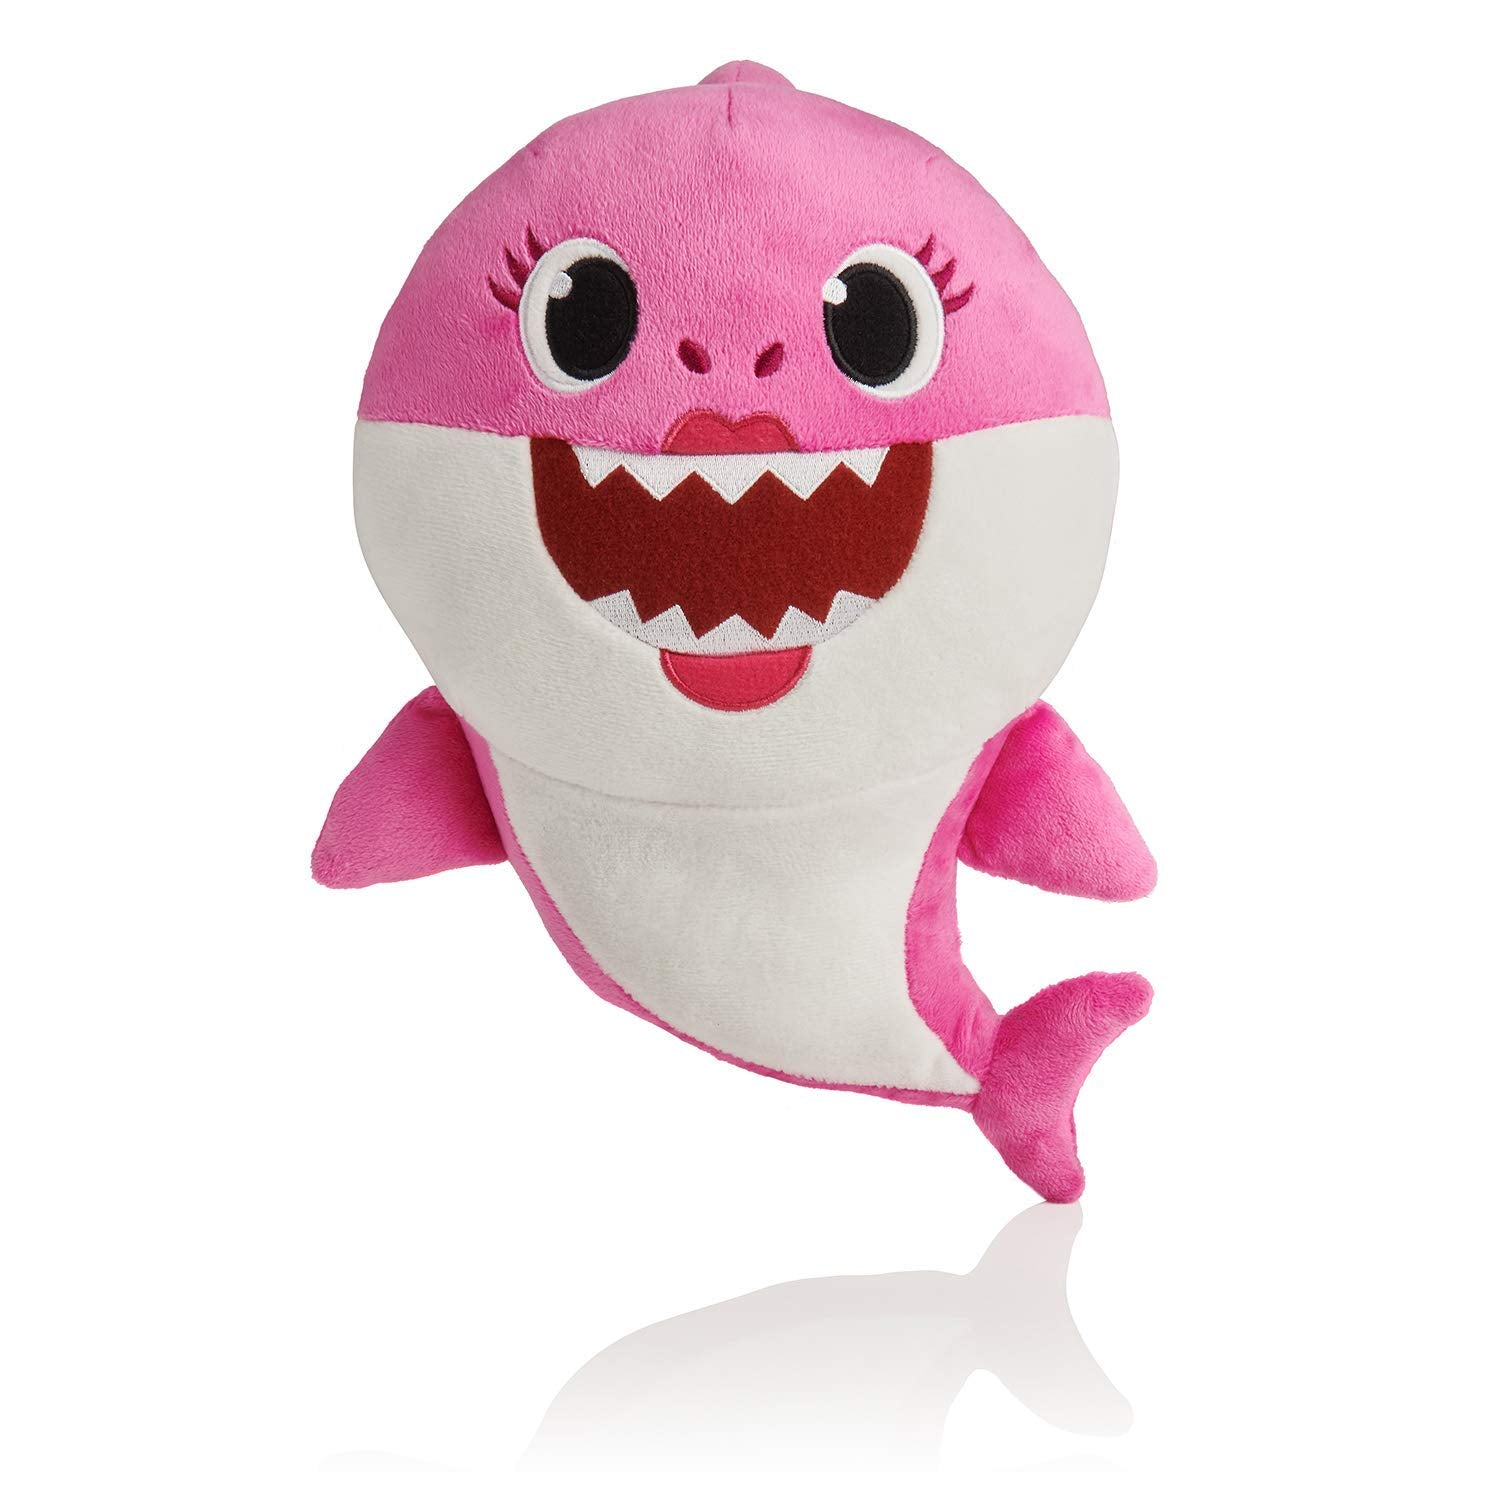 Adorable Plush Toy Little Shark Baby Fox Baby-toys-hundredfeel-SHARK-PINK-hundredfeel